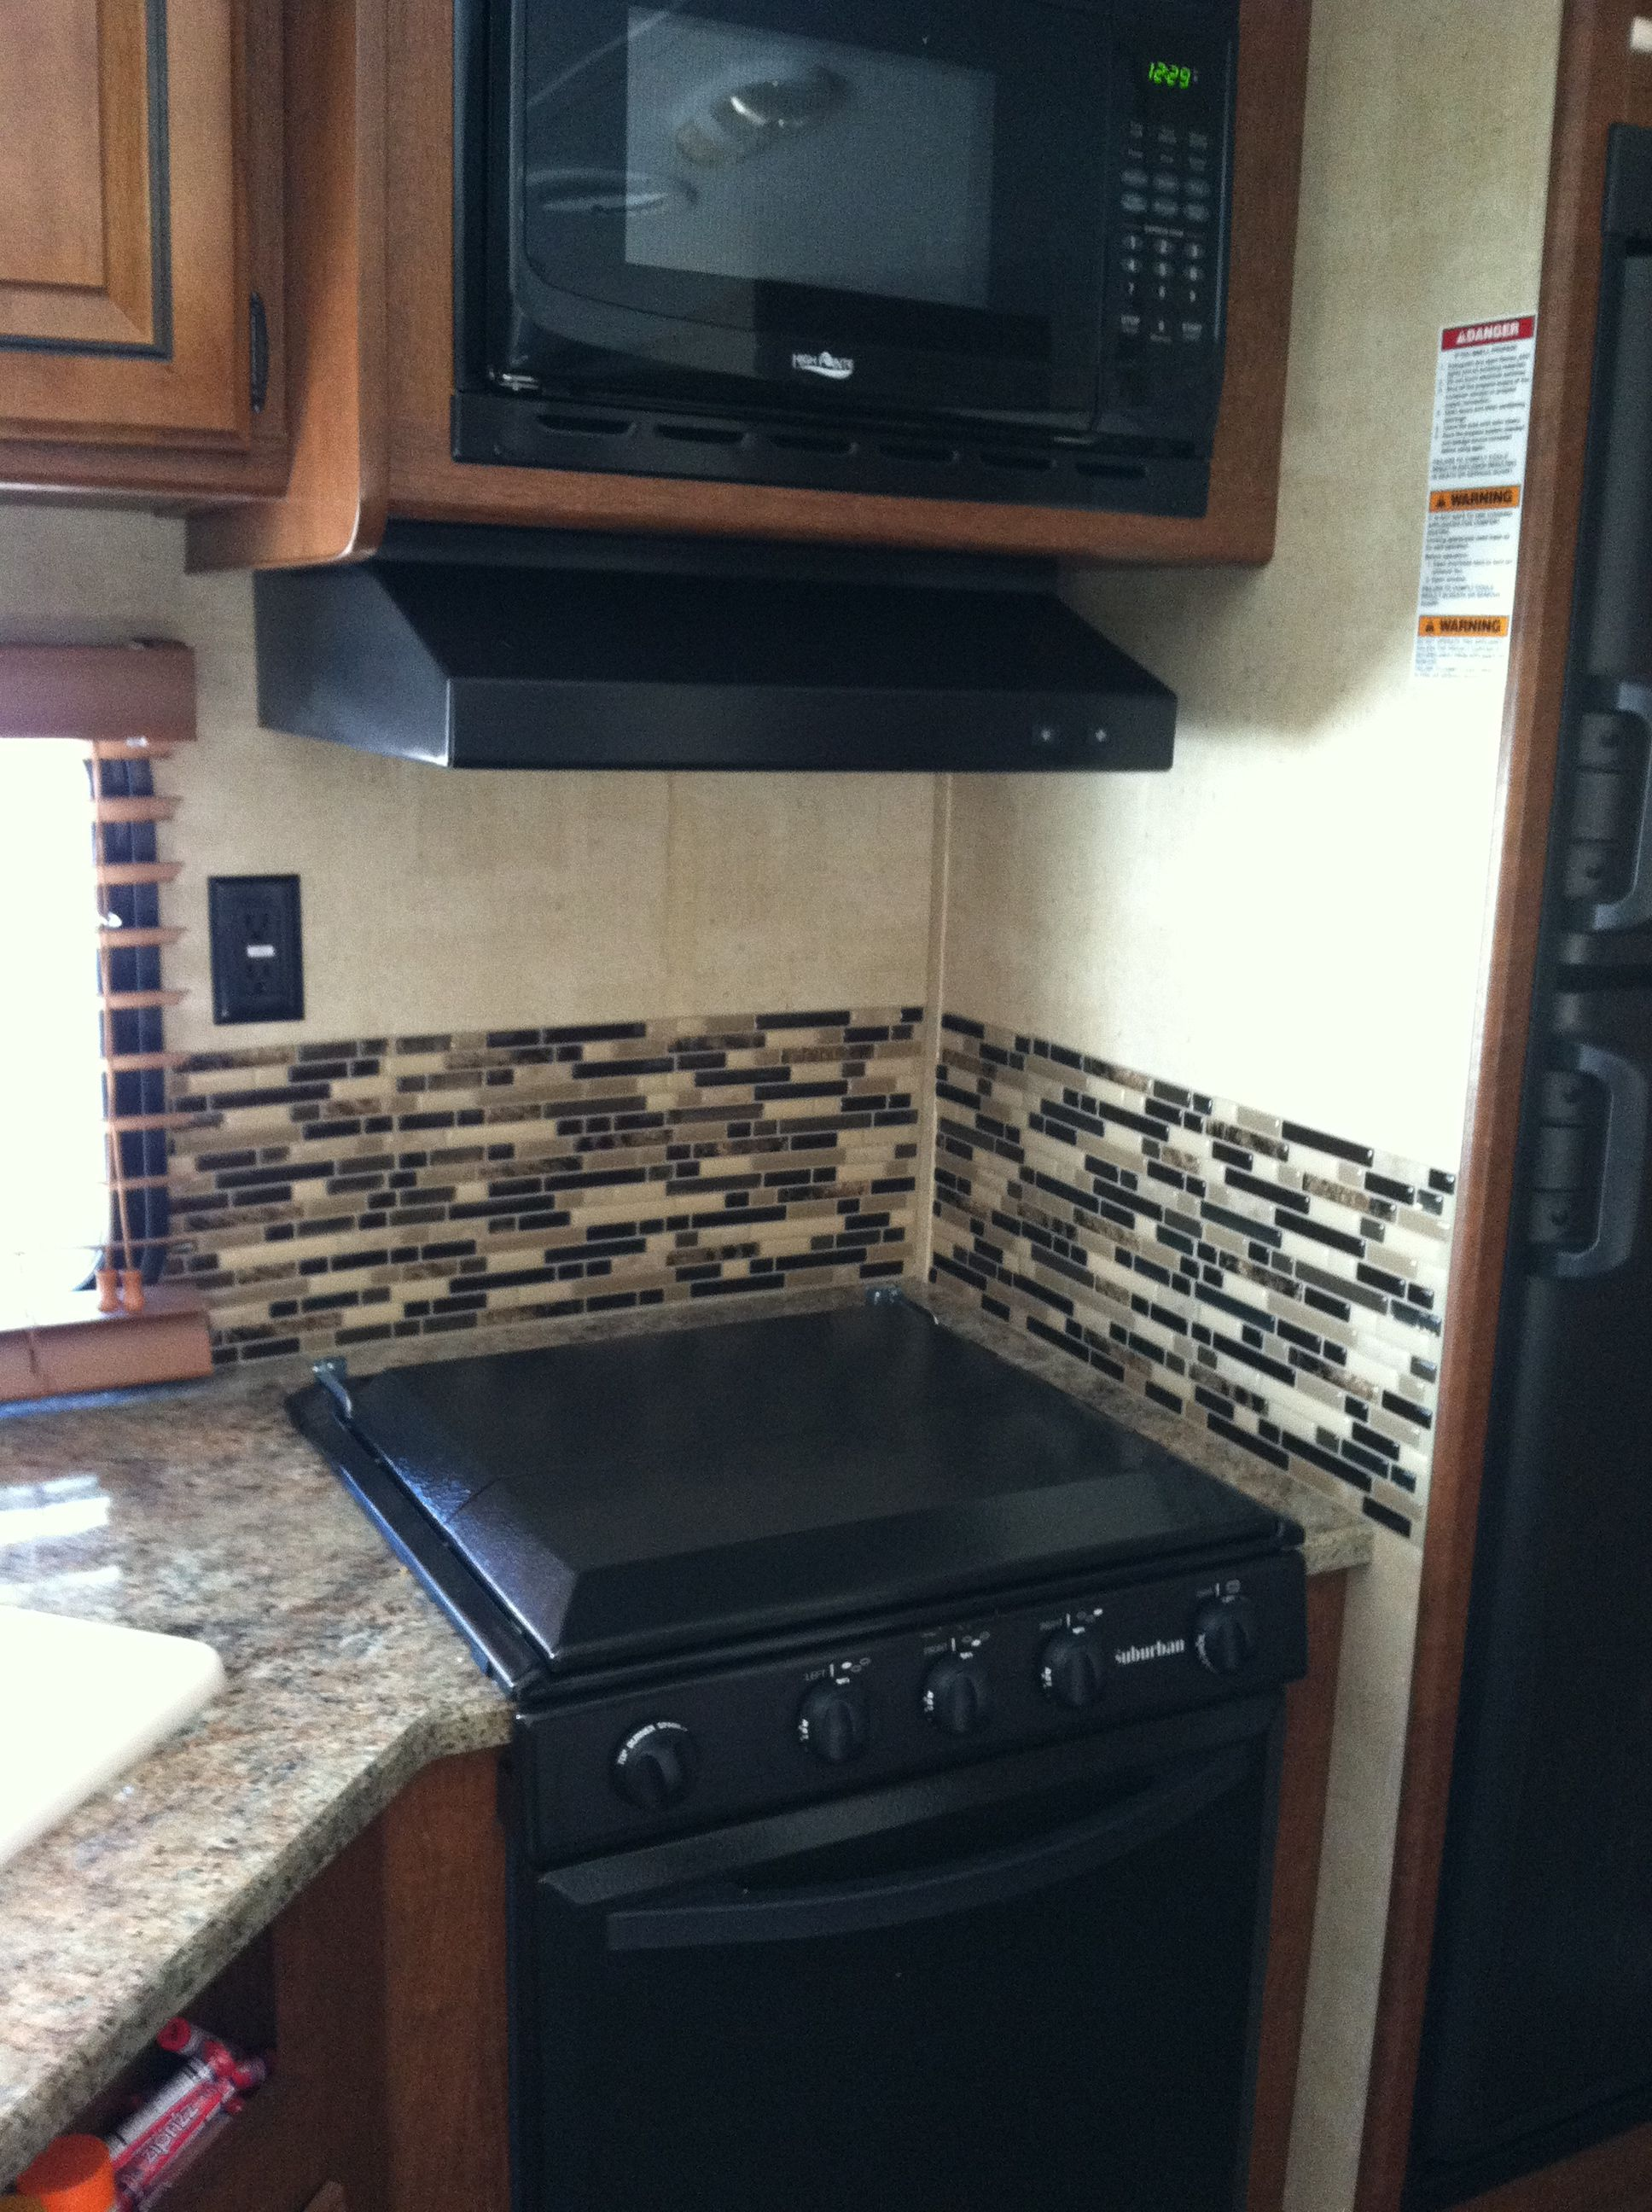 Replaced The Hideous Wallpaper Border With Peel And Stick Smart Tiles From Home Depot Love The Lo Kitchen Backsplash Designs Remodeled Campers Rv Kitchen